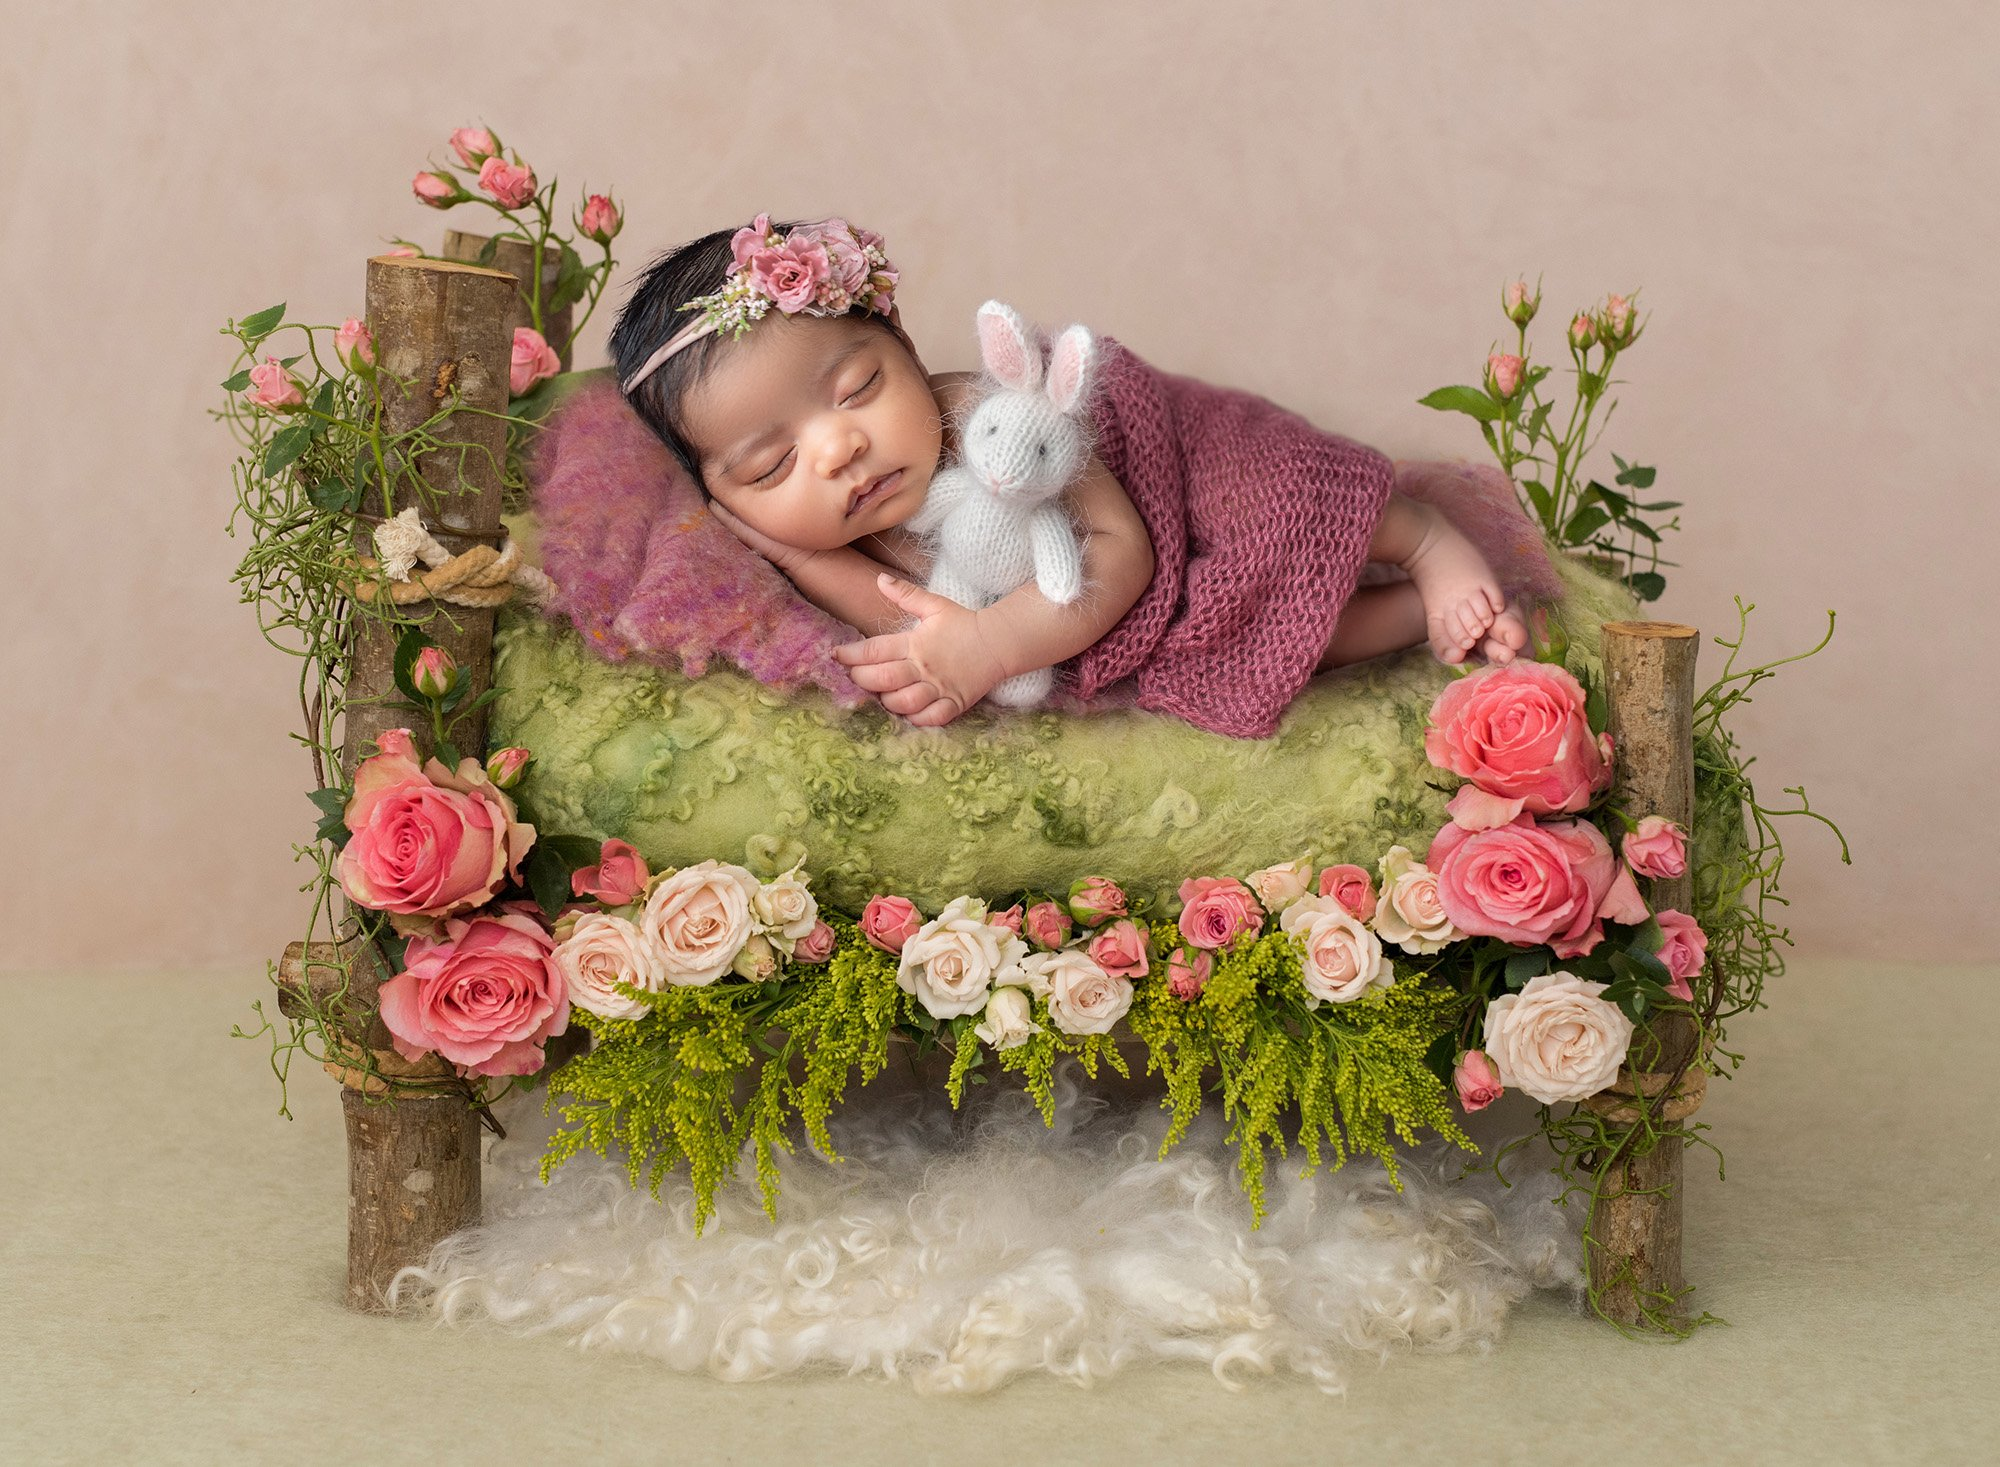 newborn baby girl sound asleep on wooden bed draped in mauve sweater wrap holding stuffed bunny surrounded by pink flowers and greenery atop a fuzzy blanket